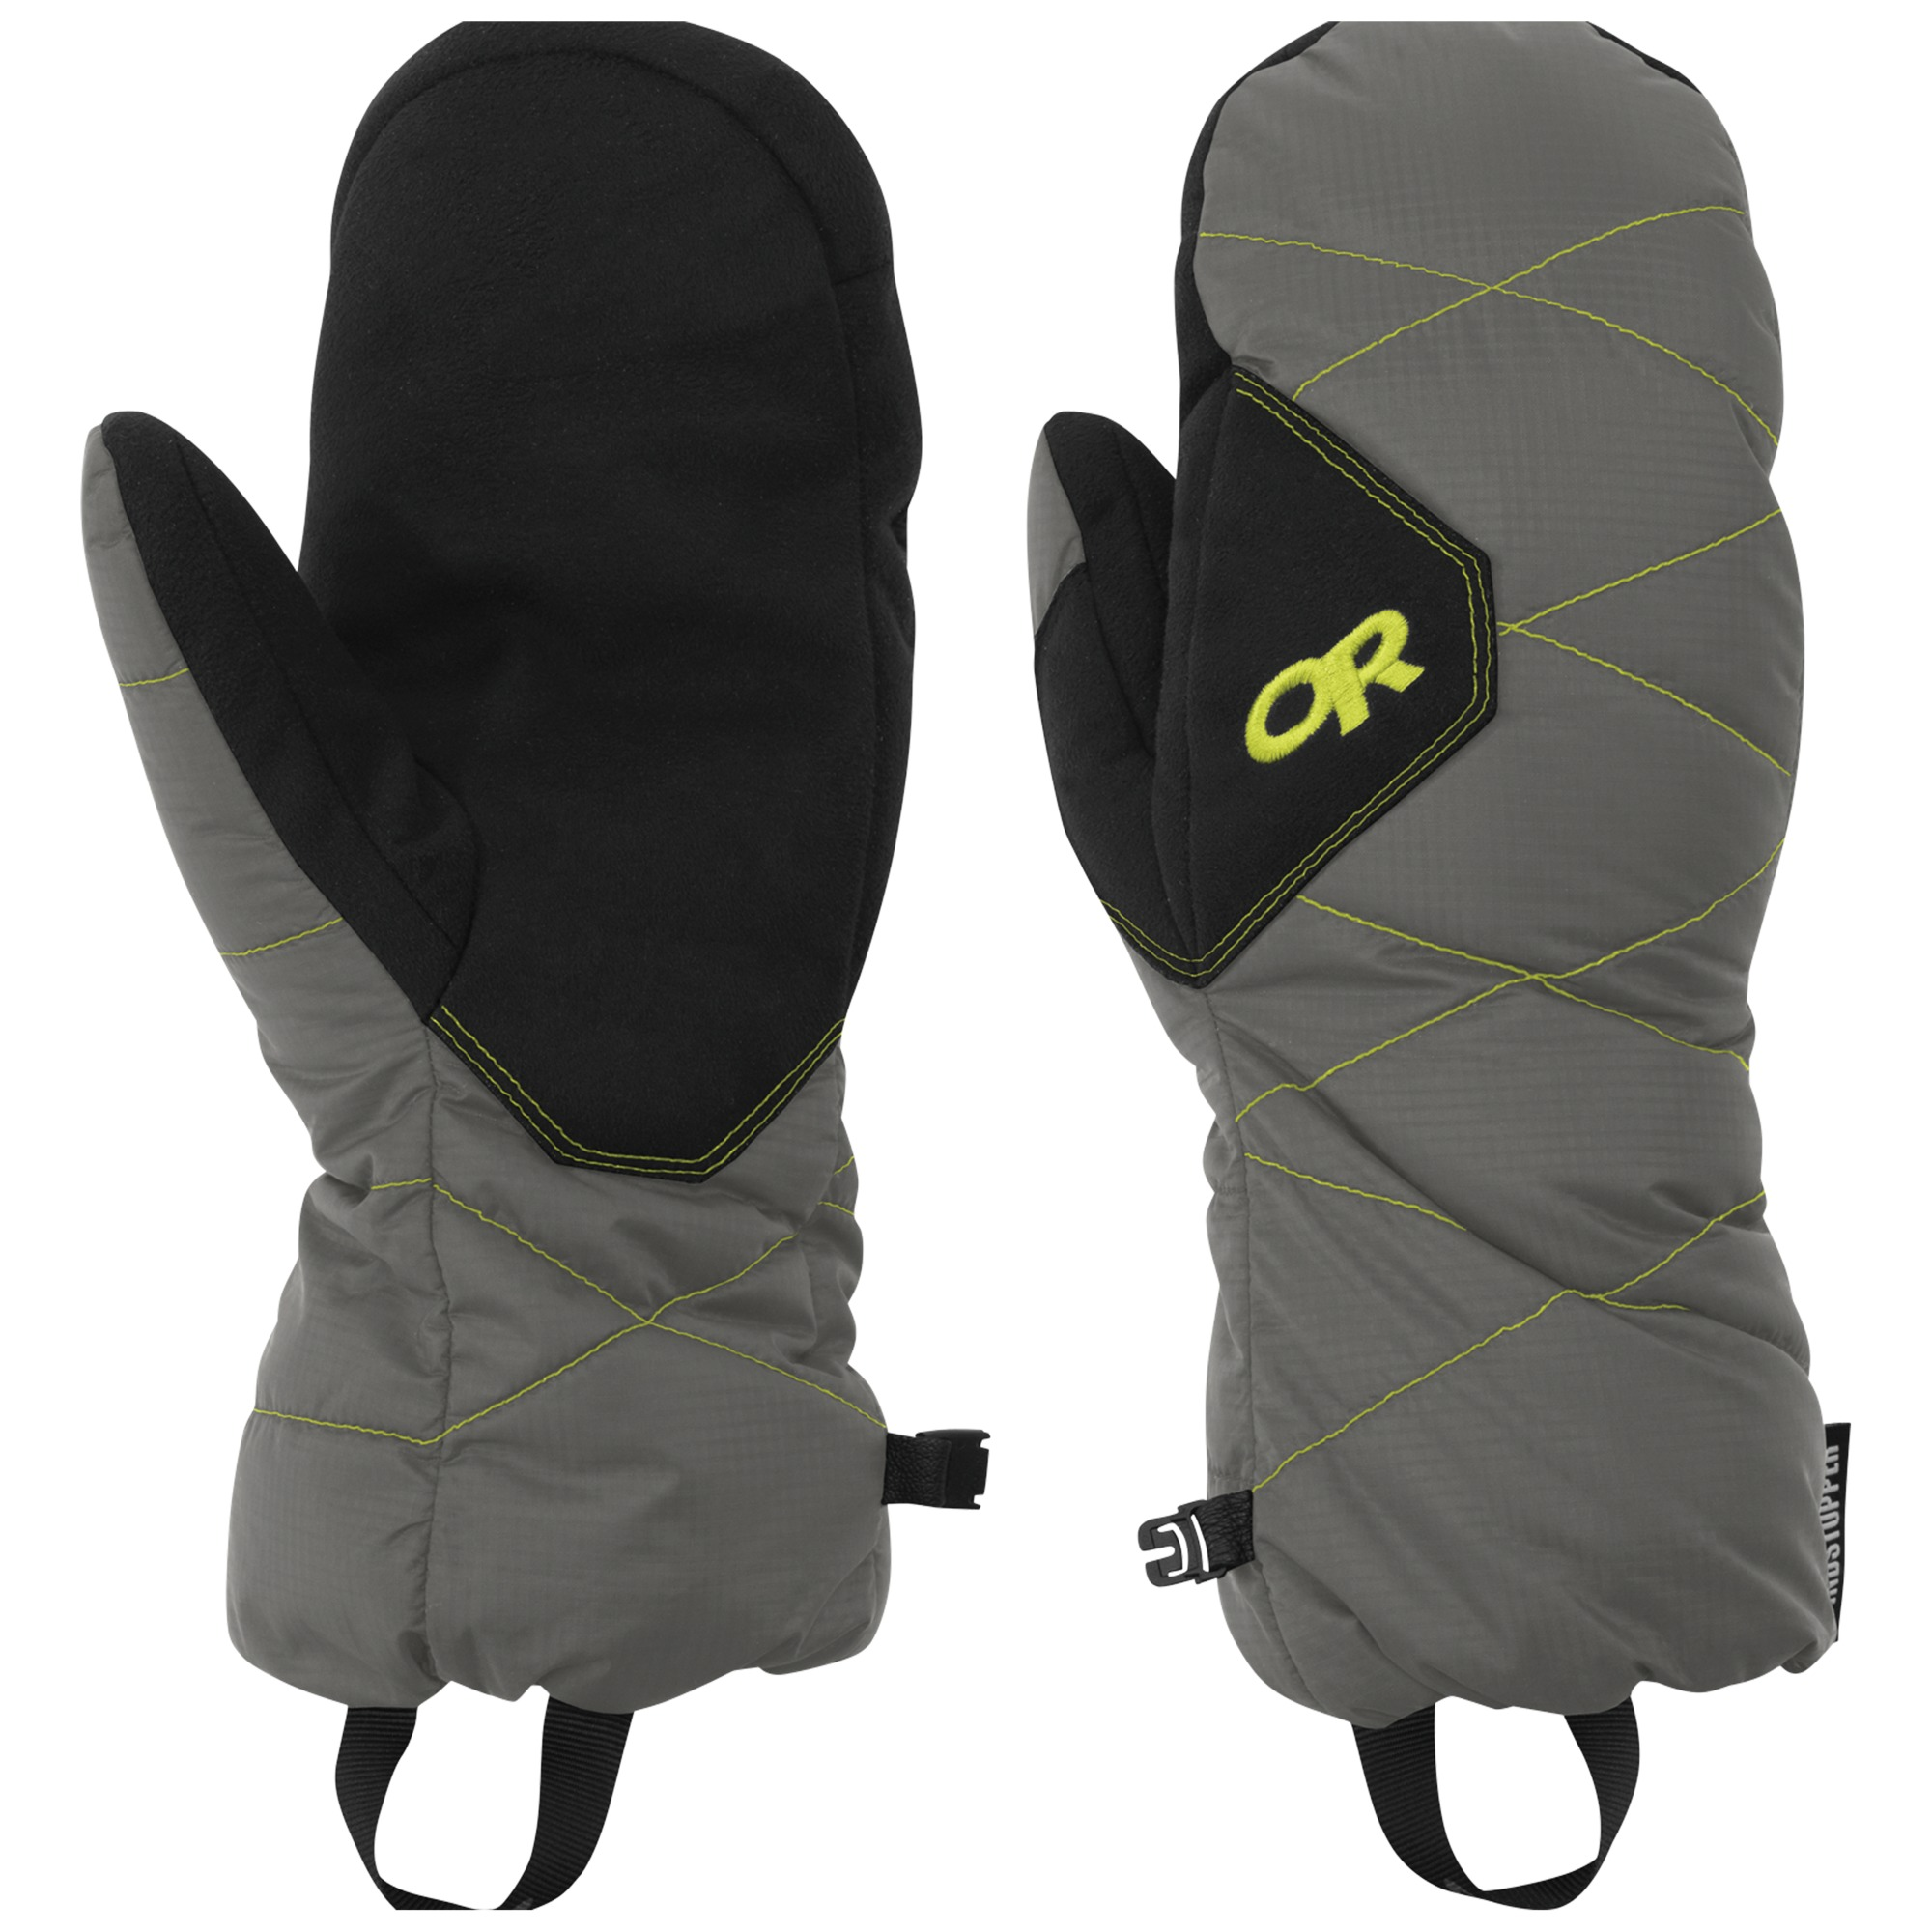 Outdoor Research PhosphOutdoor Research Mitts-pewter/lemongrass-M - Gr. M